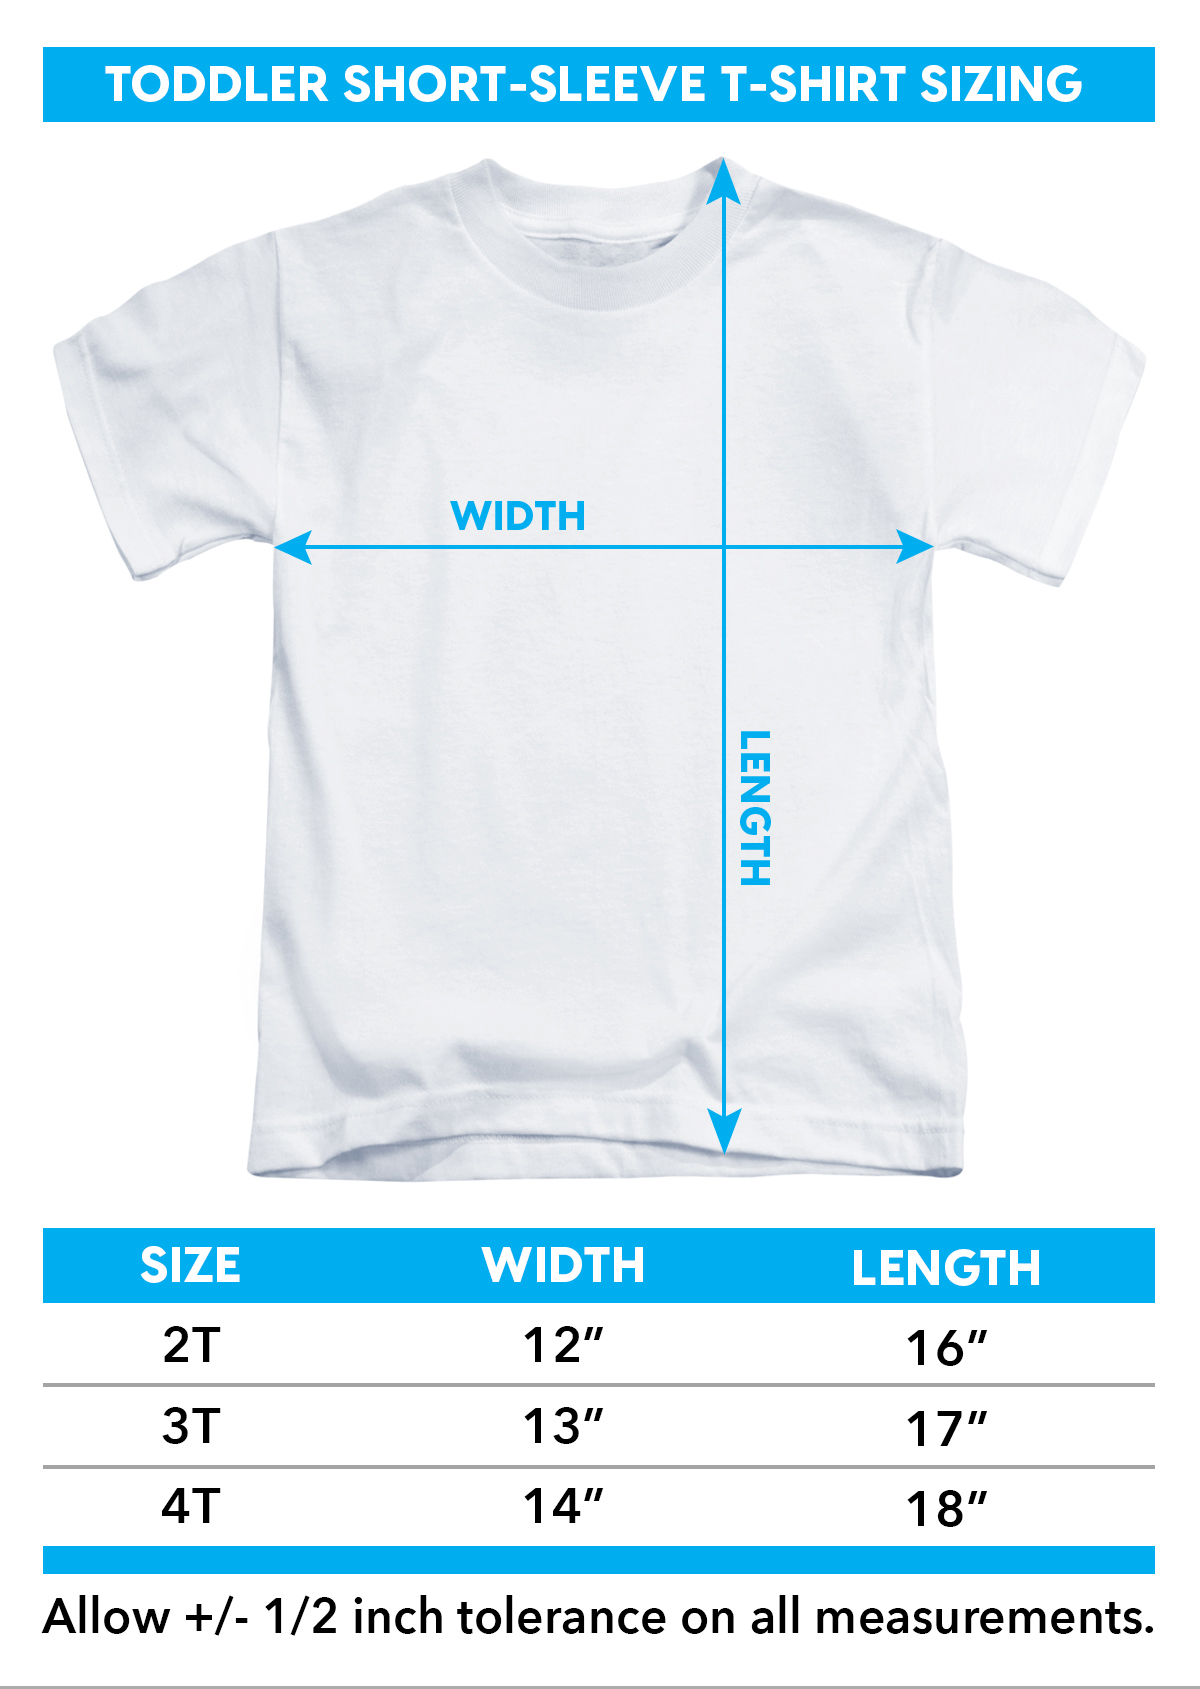 Sizing Chart for Aquaman Toddler T-Shirt